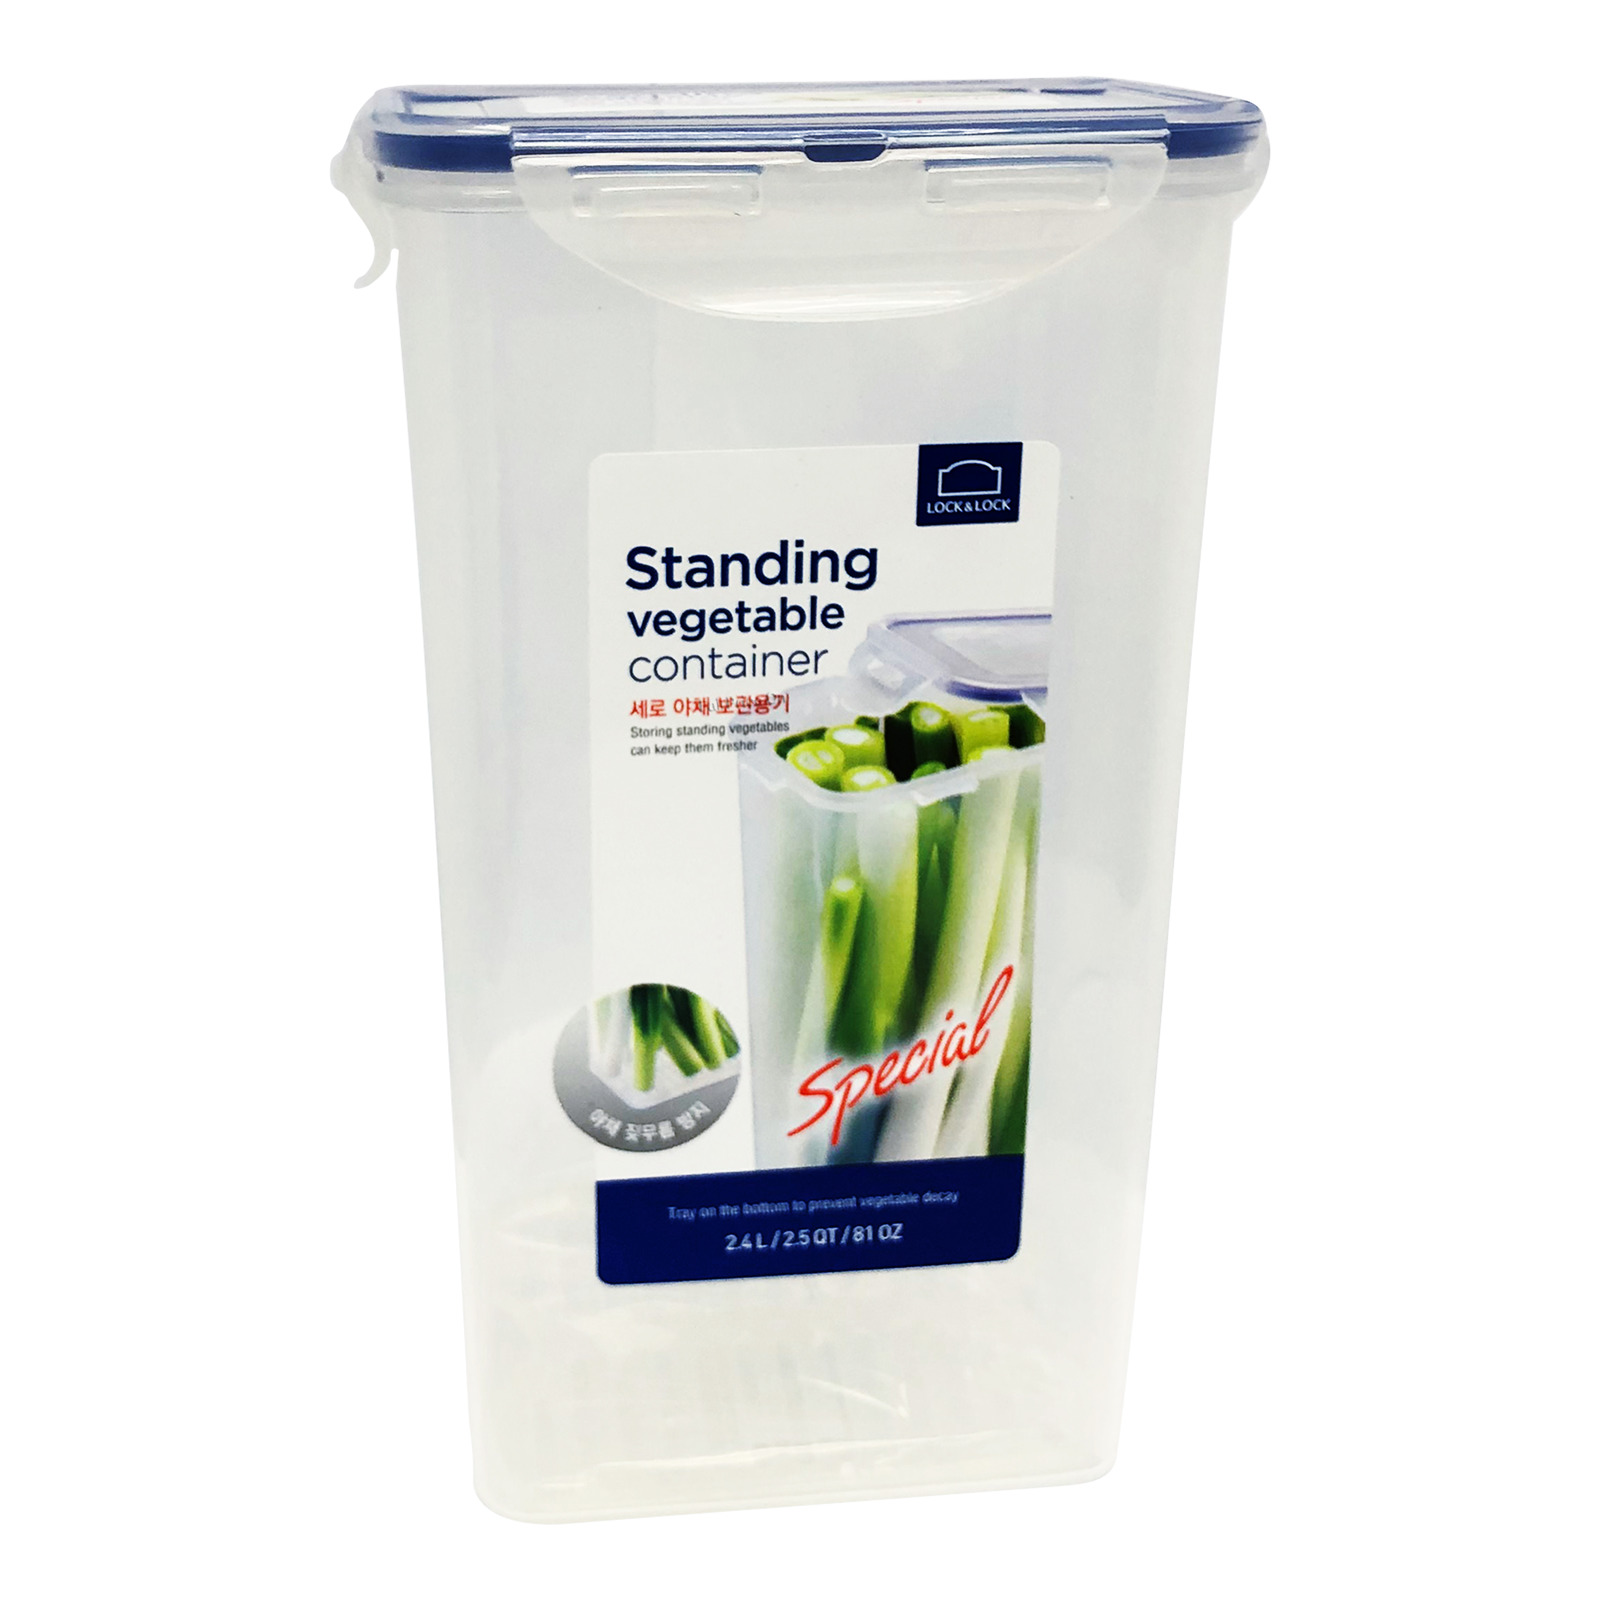 Lock & Lock Stackable Airtight Container - Standing Vegetable